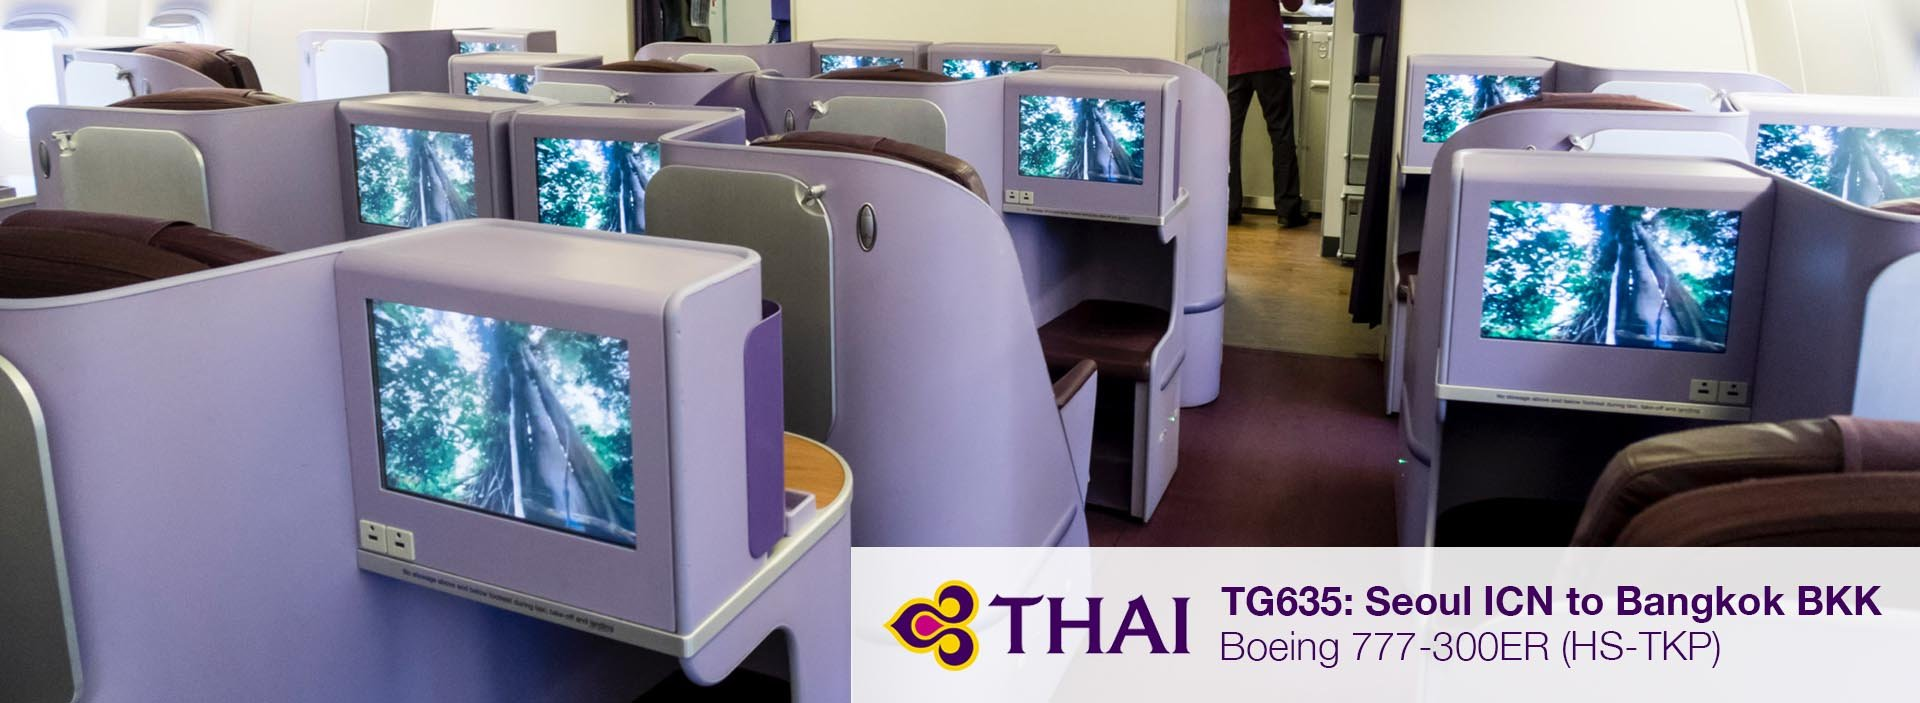 Flight Review: Thai Airways 777-300ER Business Class from Seoul to Bangkok via Taipei